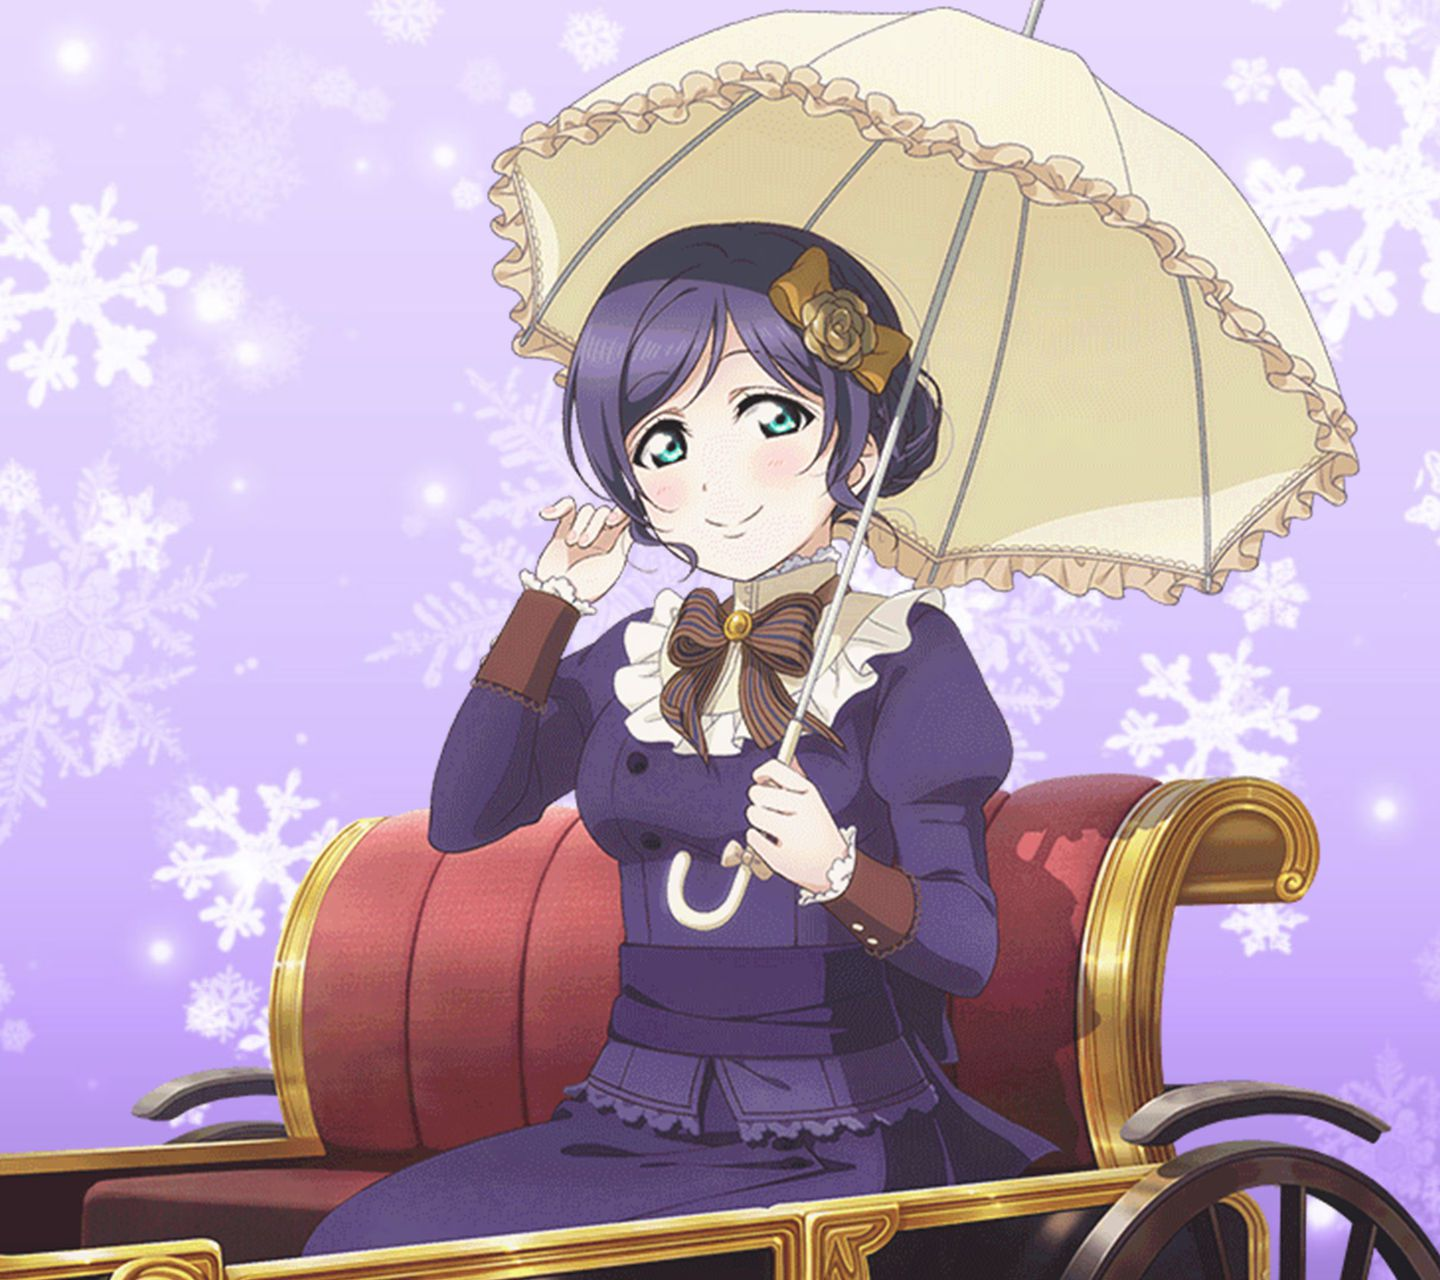 27522_lovelive_Android